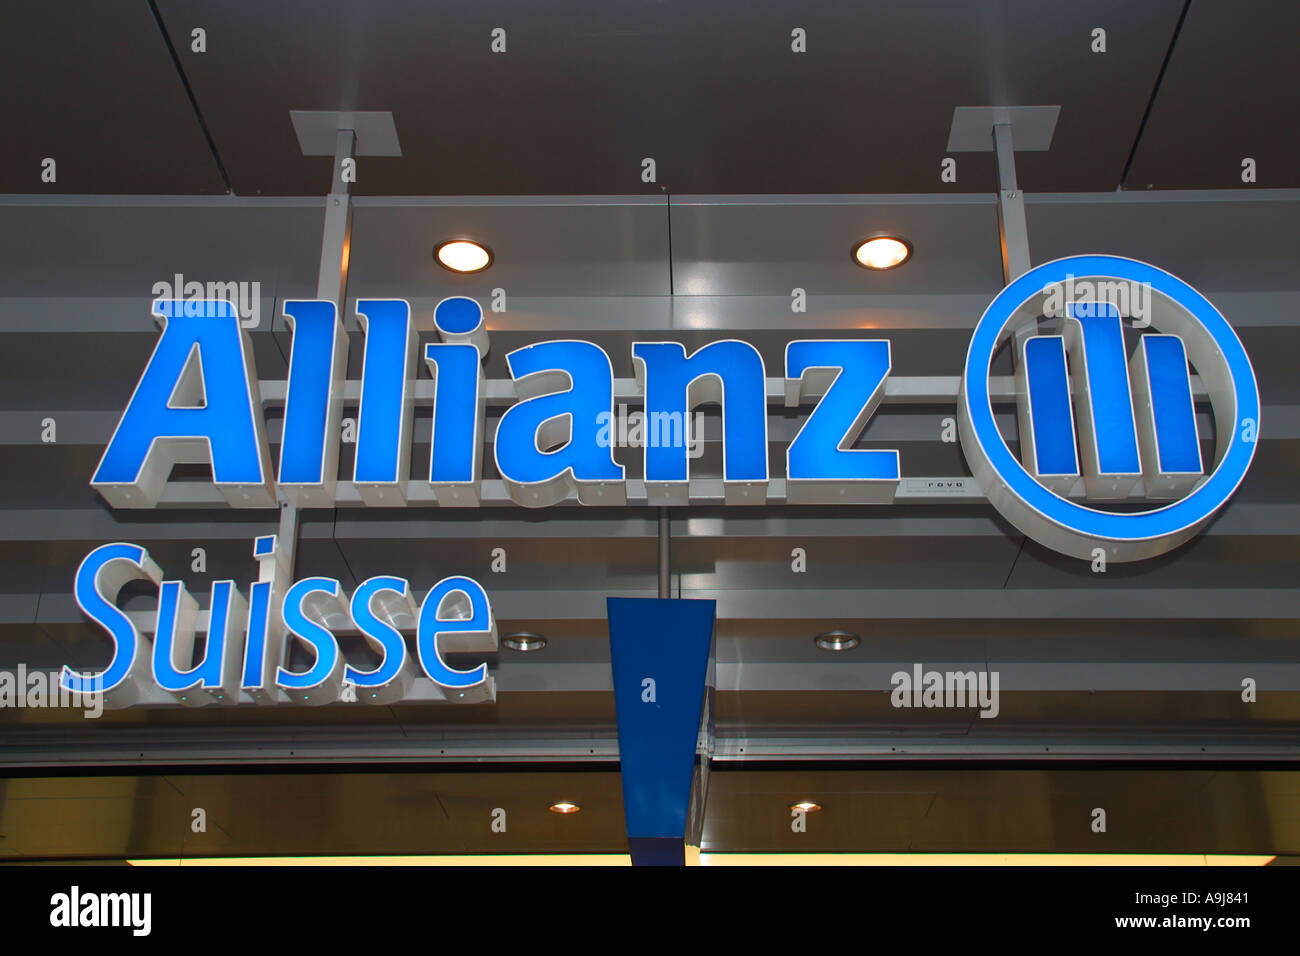 Switzerland Zurich Allianz Suisse Logo - Stock Image